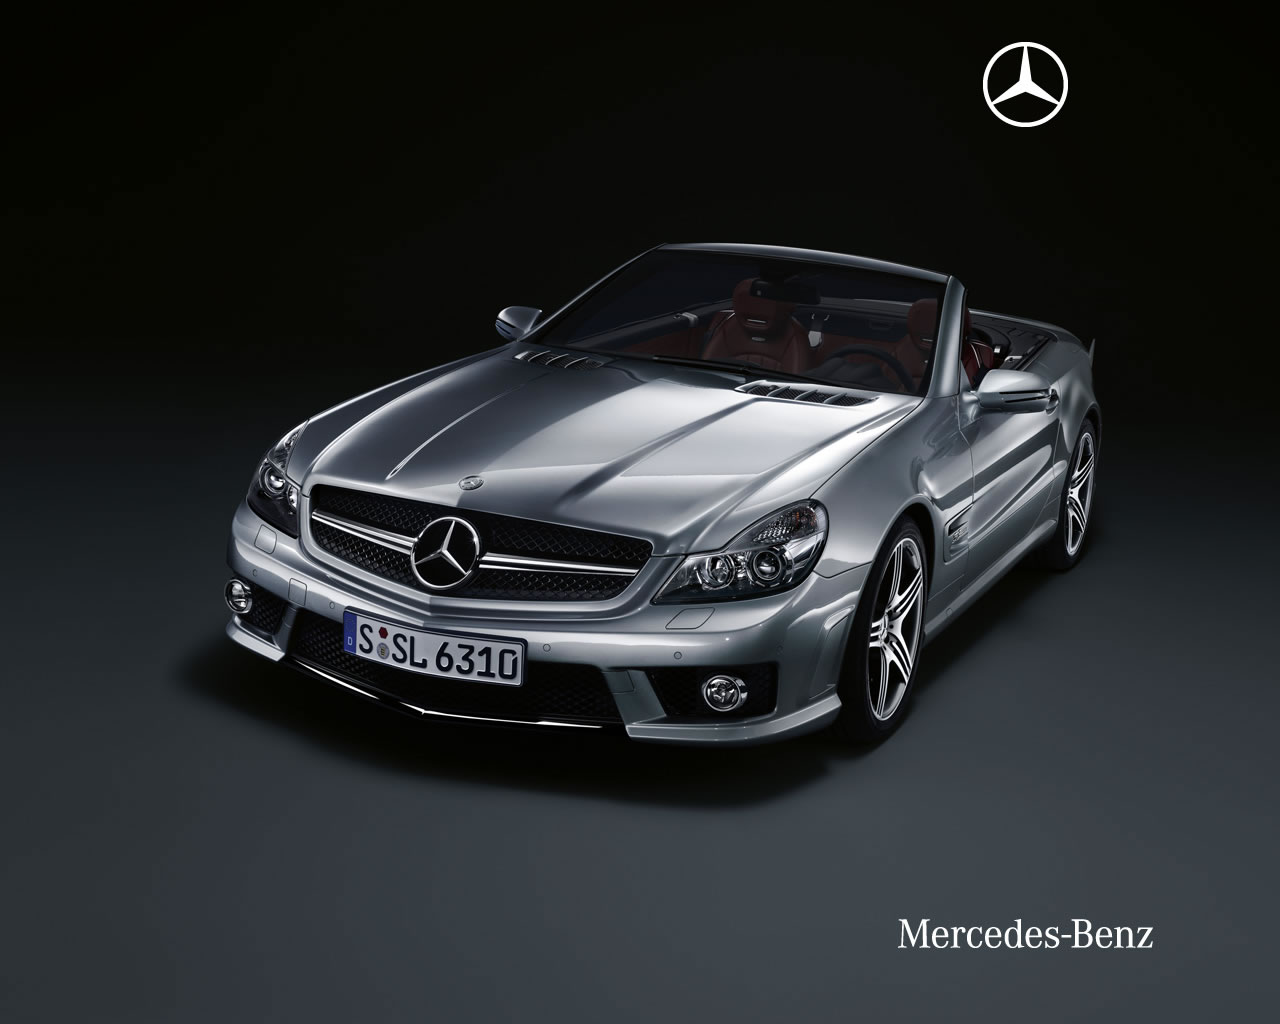 mercedes benz HD Wallpaper Free Download Image Of